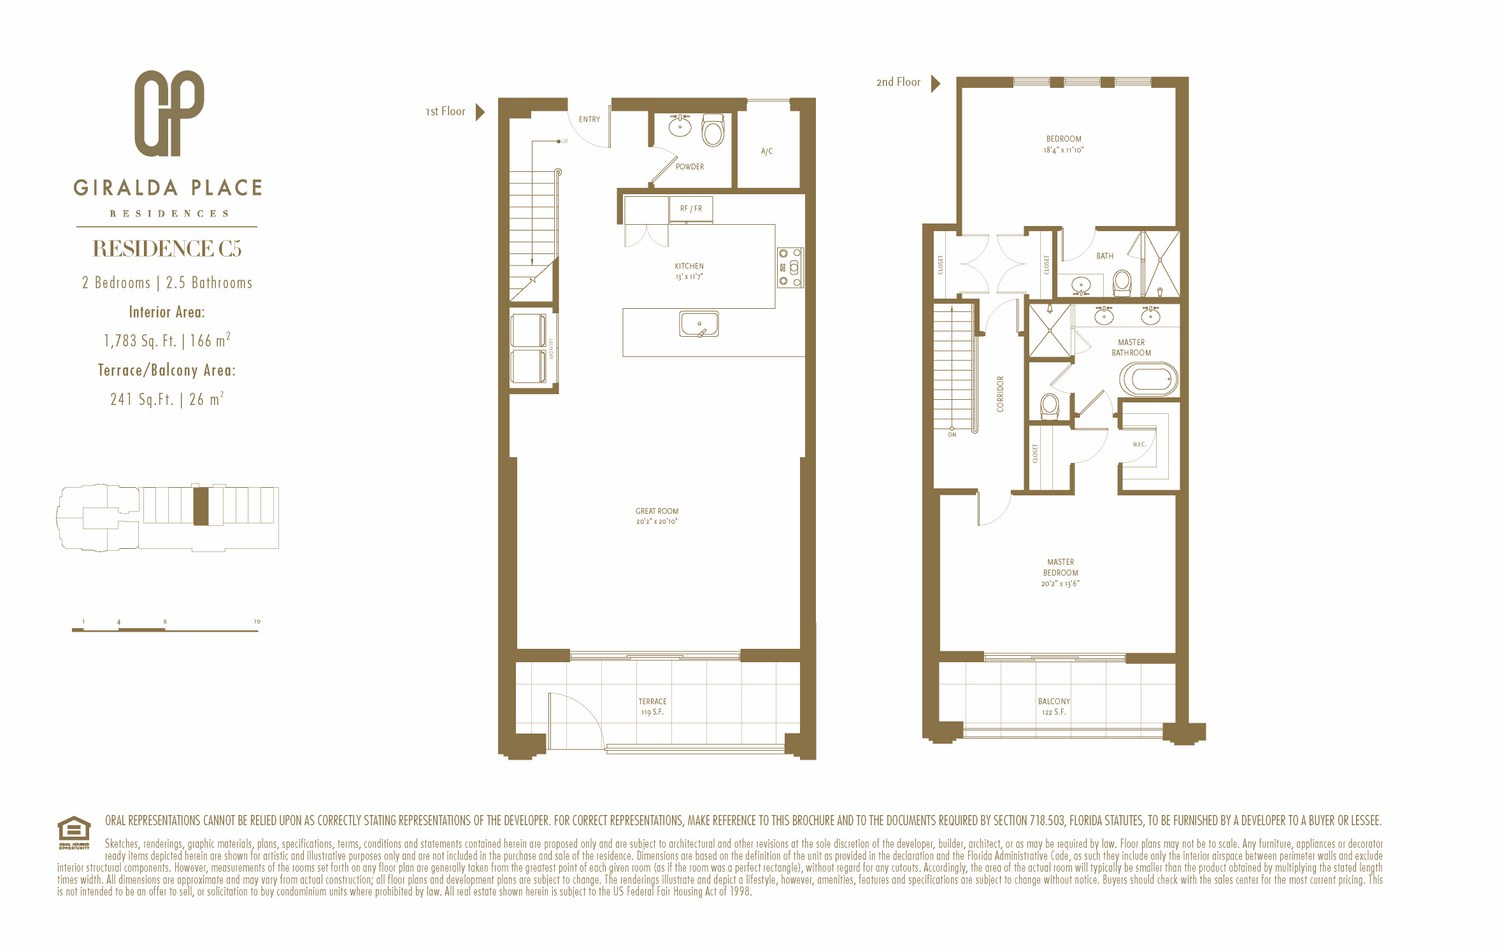 Giralda Place - Floorplan 8